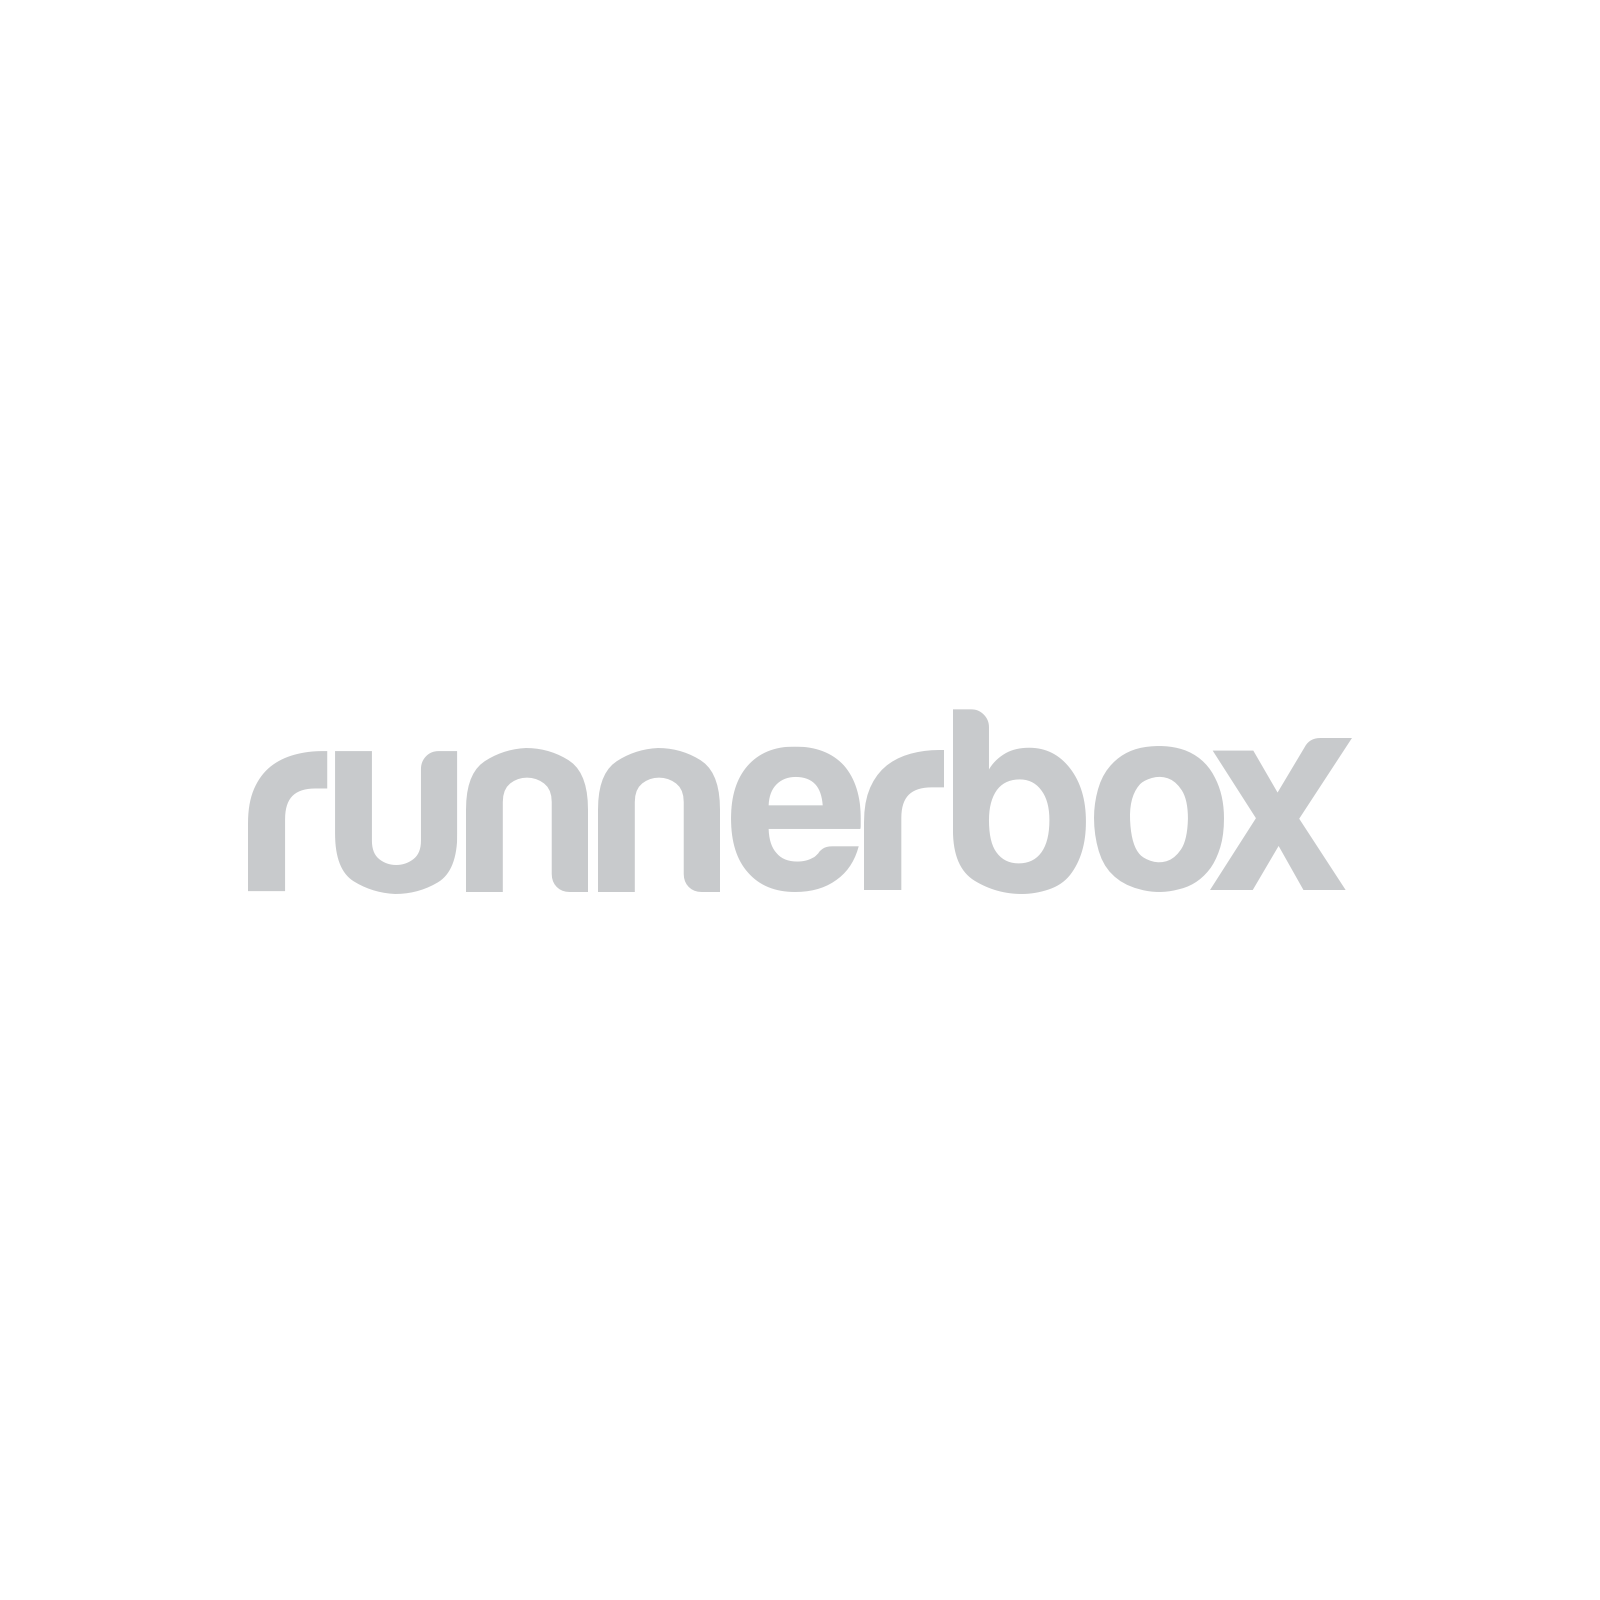 Copy of Runnerbox Logo